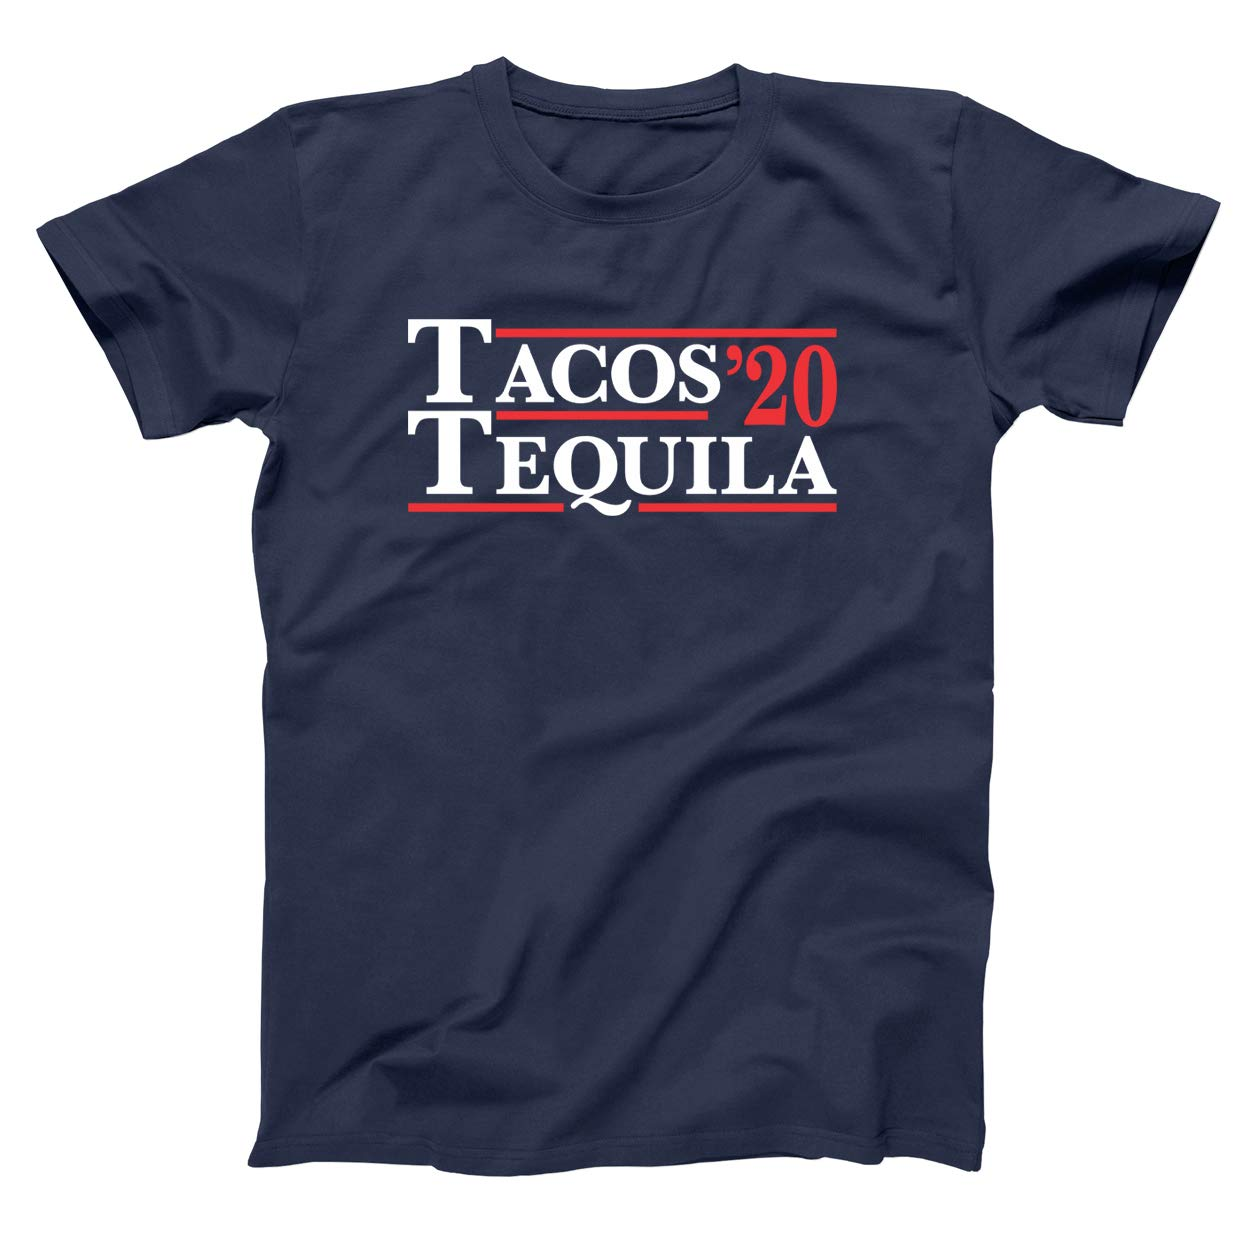 Donkey Tees Tacos And Tequila Election 2020 Funny Mexican Foodie Humor S T Shirt 2177